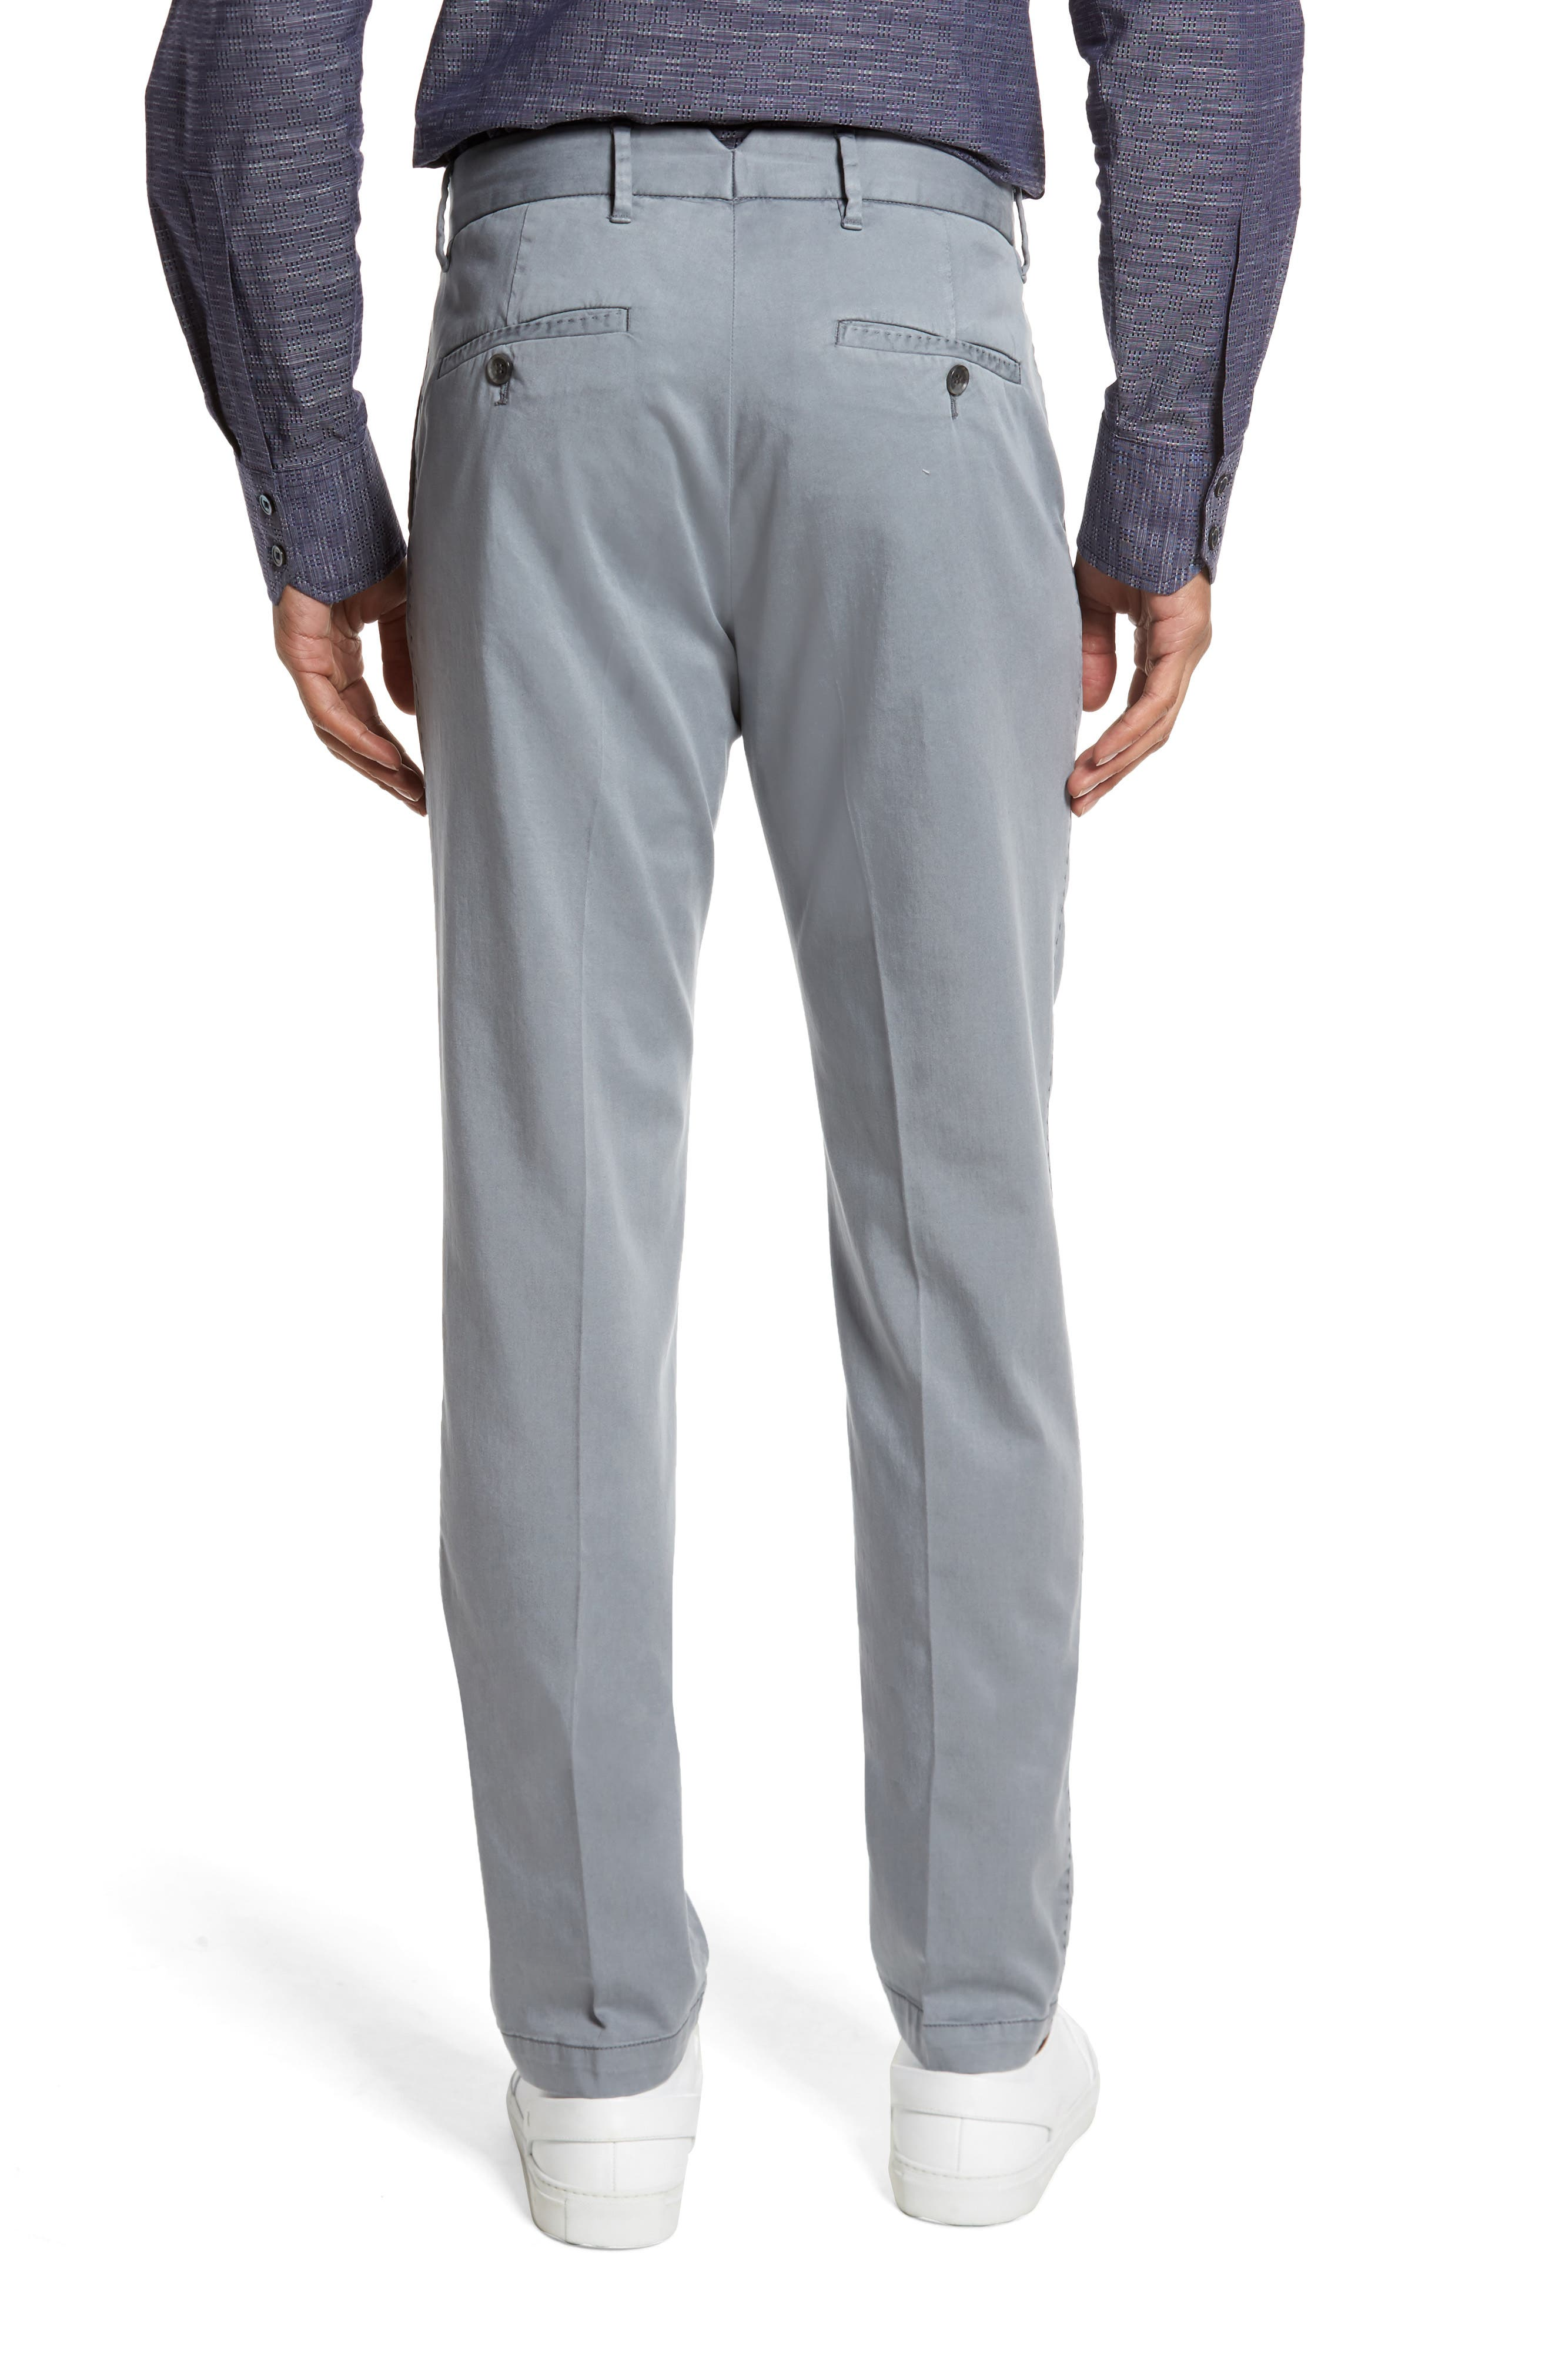 Aster Straight Fit Pants,                             Alternate thumbnail 2, color,                             020